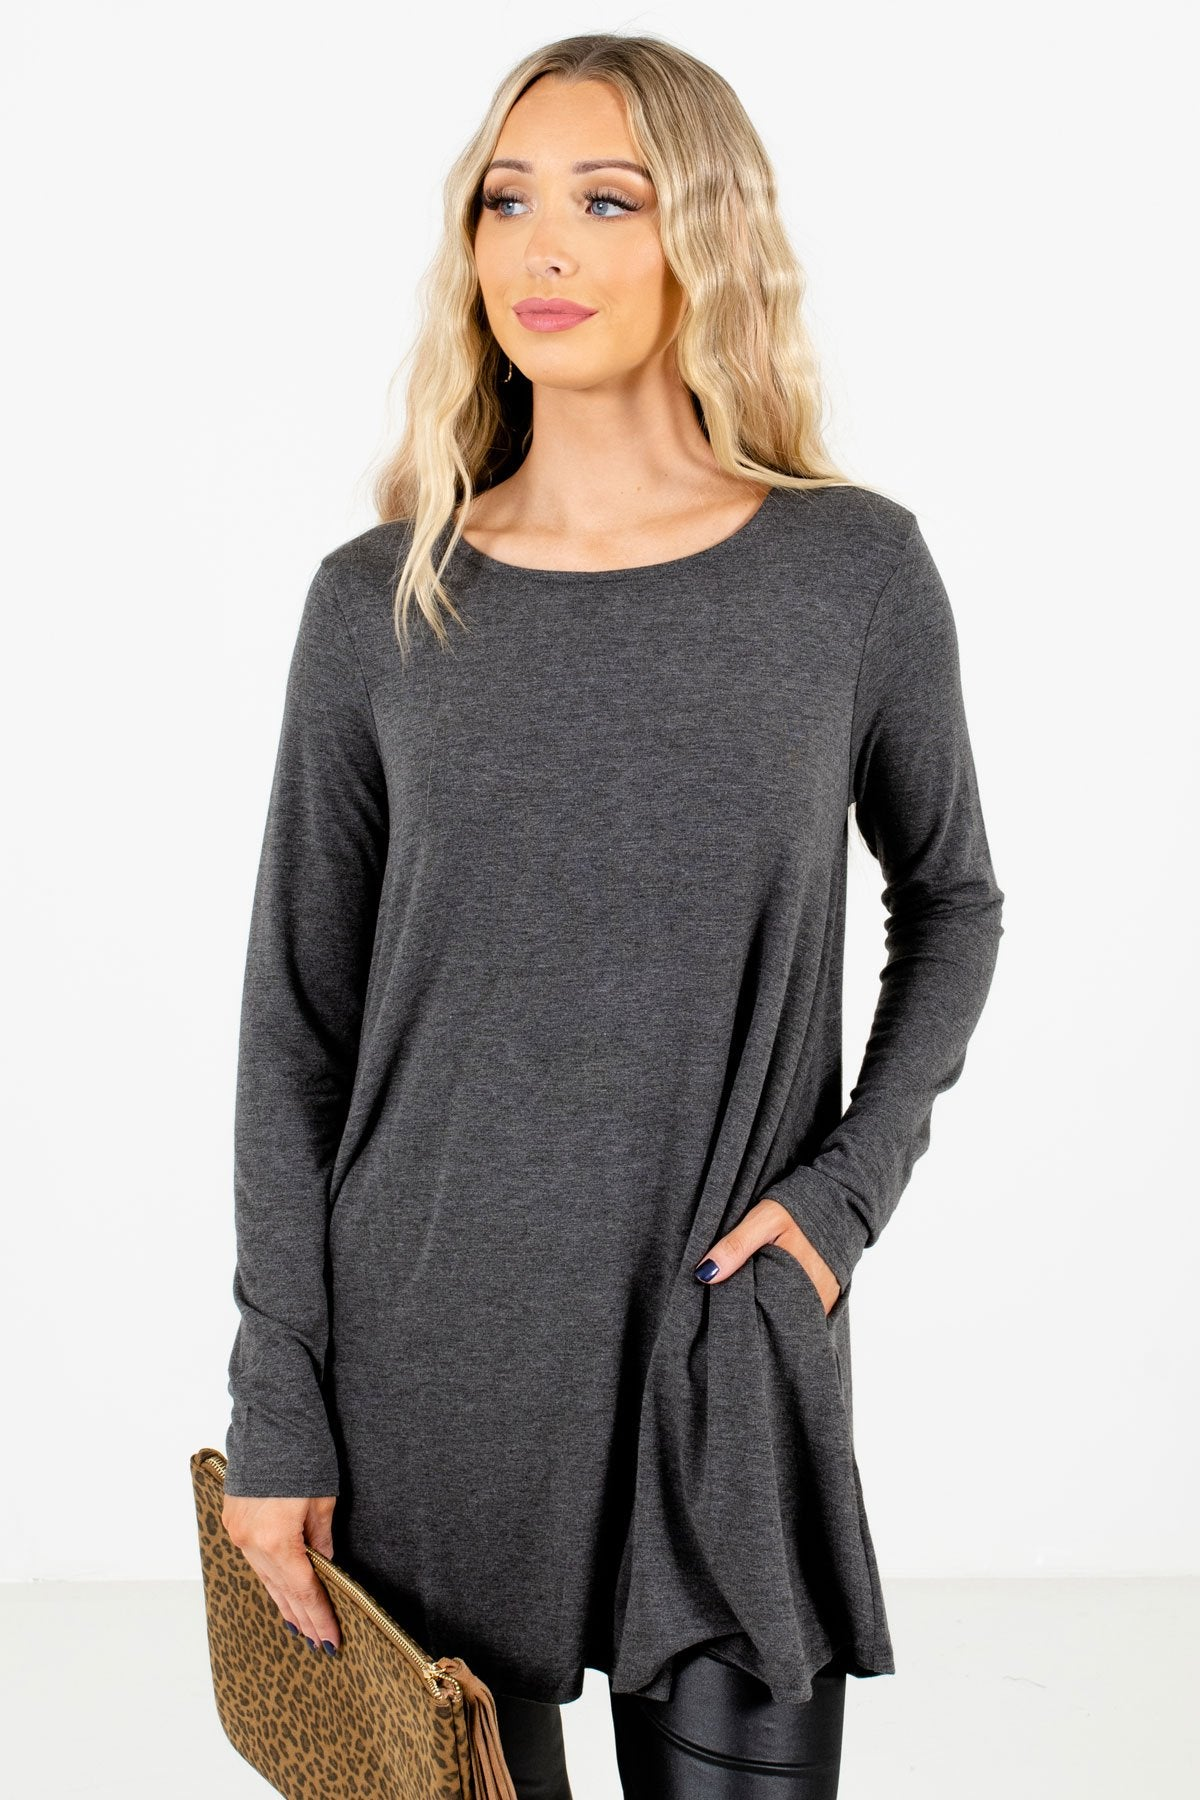 Charcoal Gray Boutique Long Sleeve Tops for Women